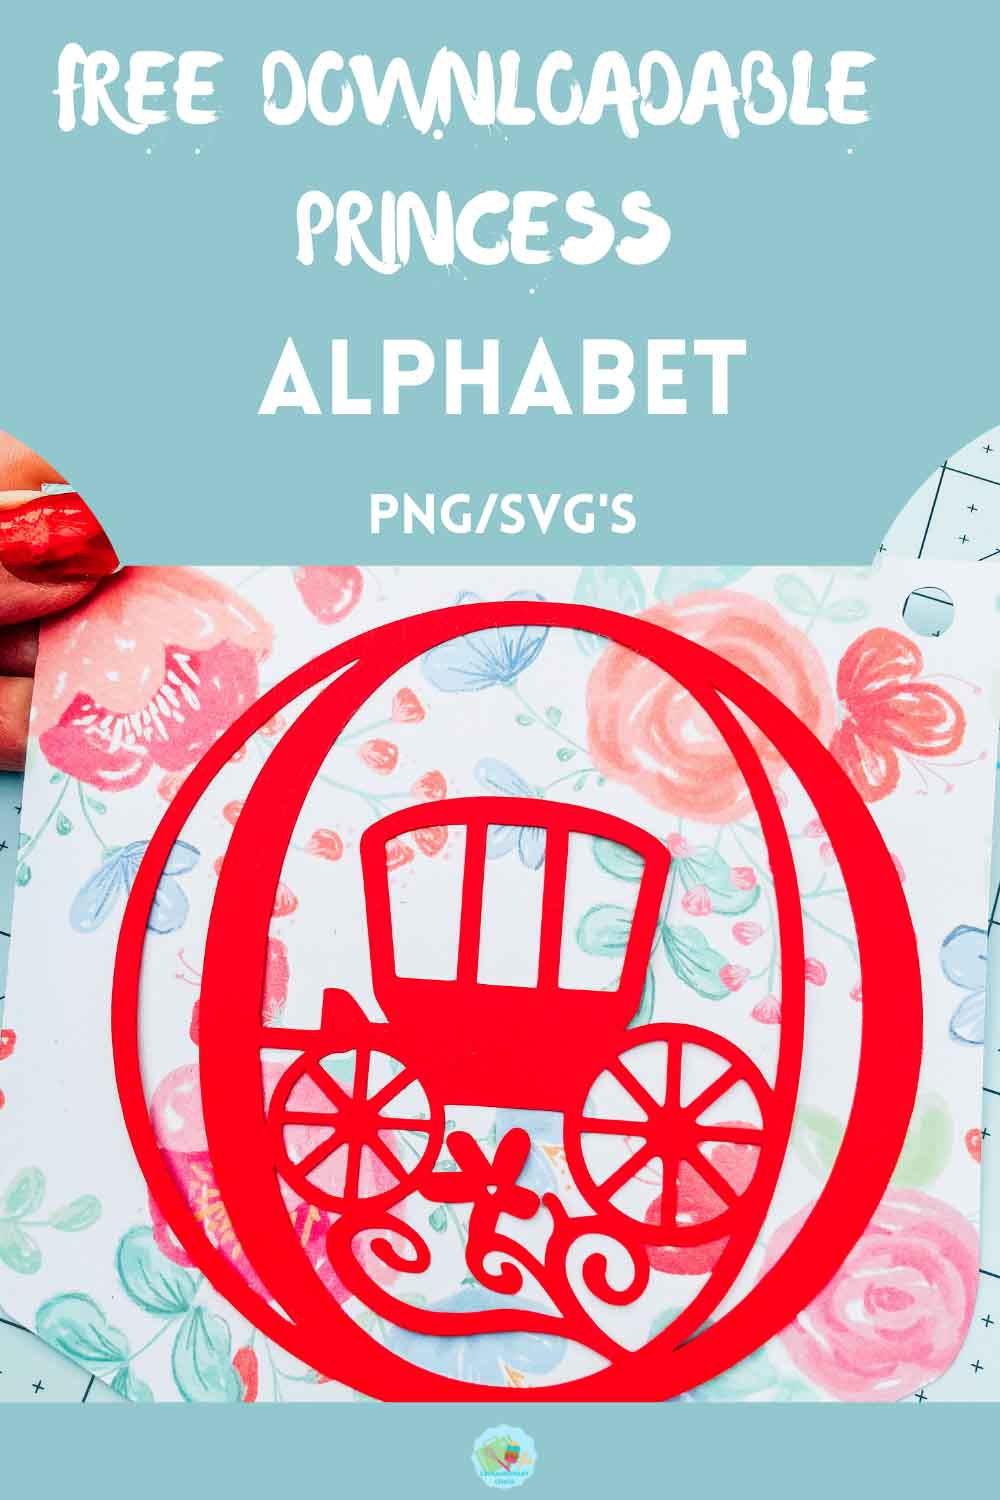 Free PNG_ SVG Princess Alphabet and numbers for scrapbooking and crafting